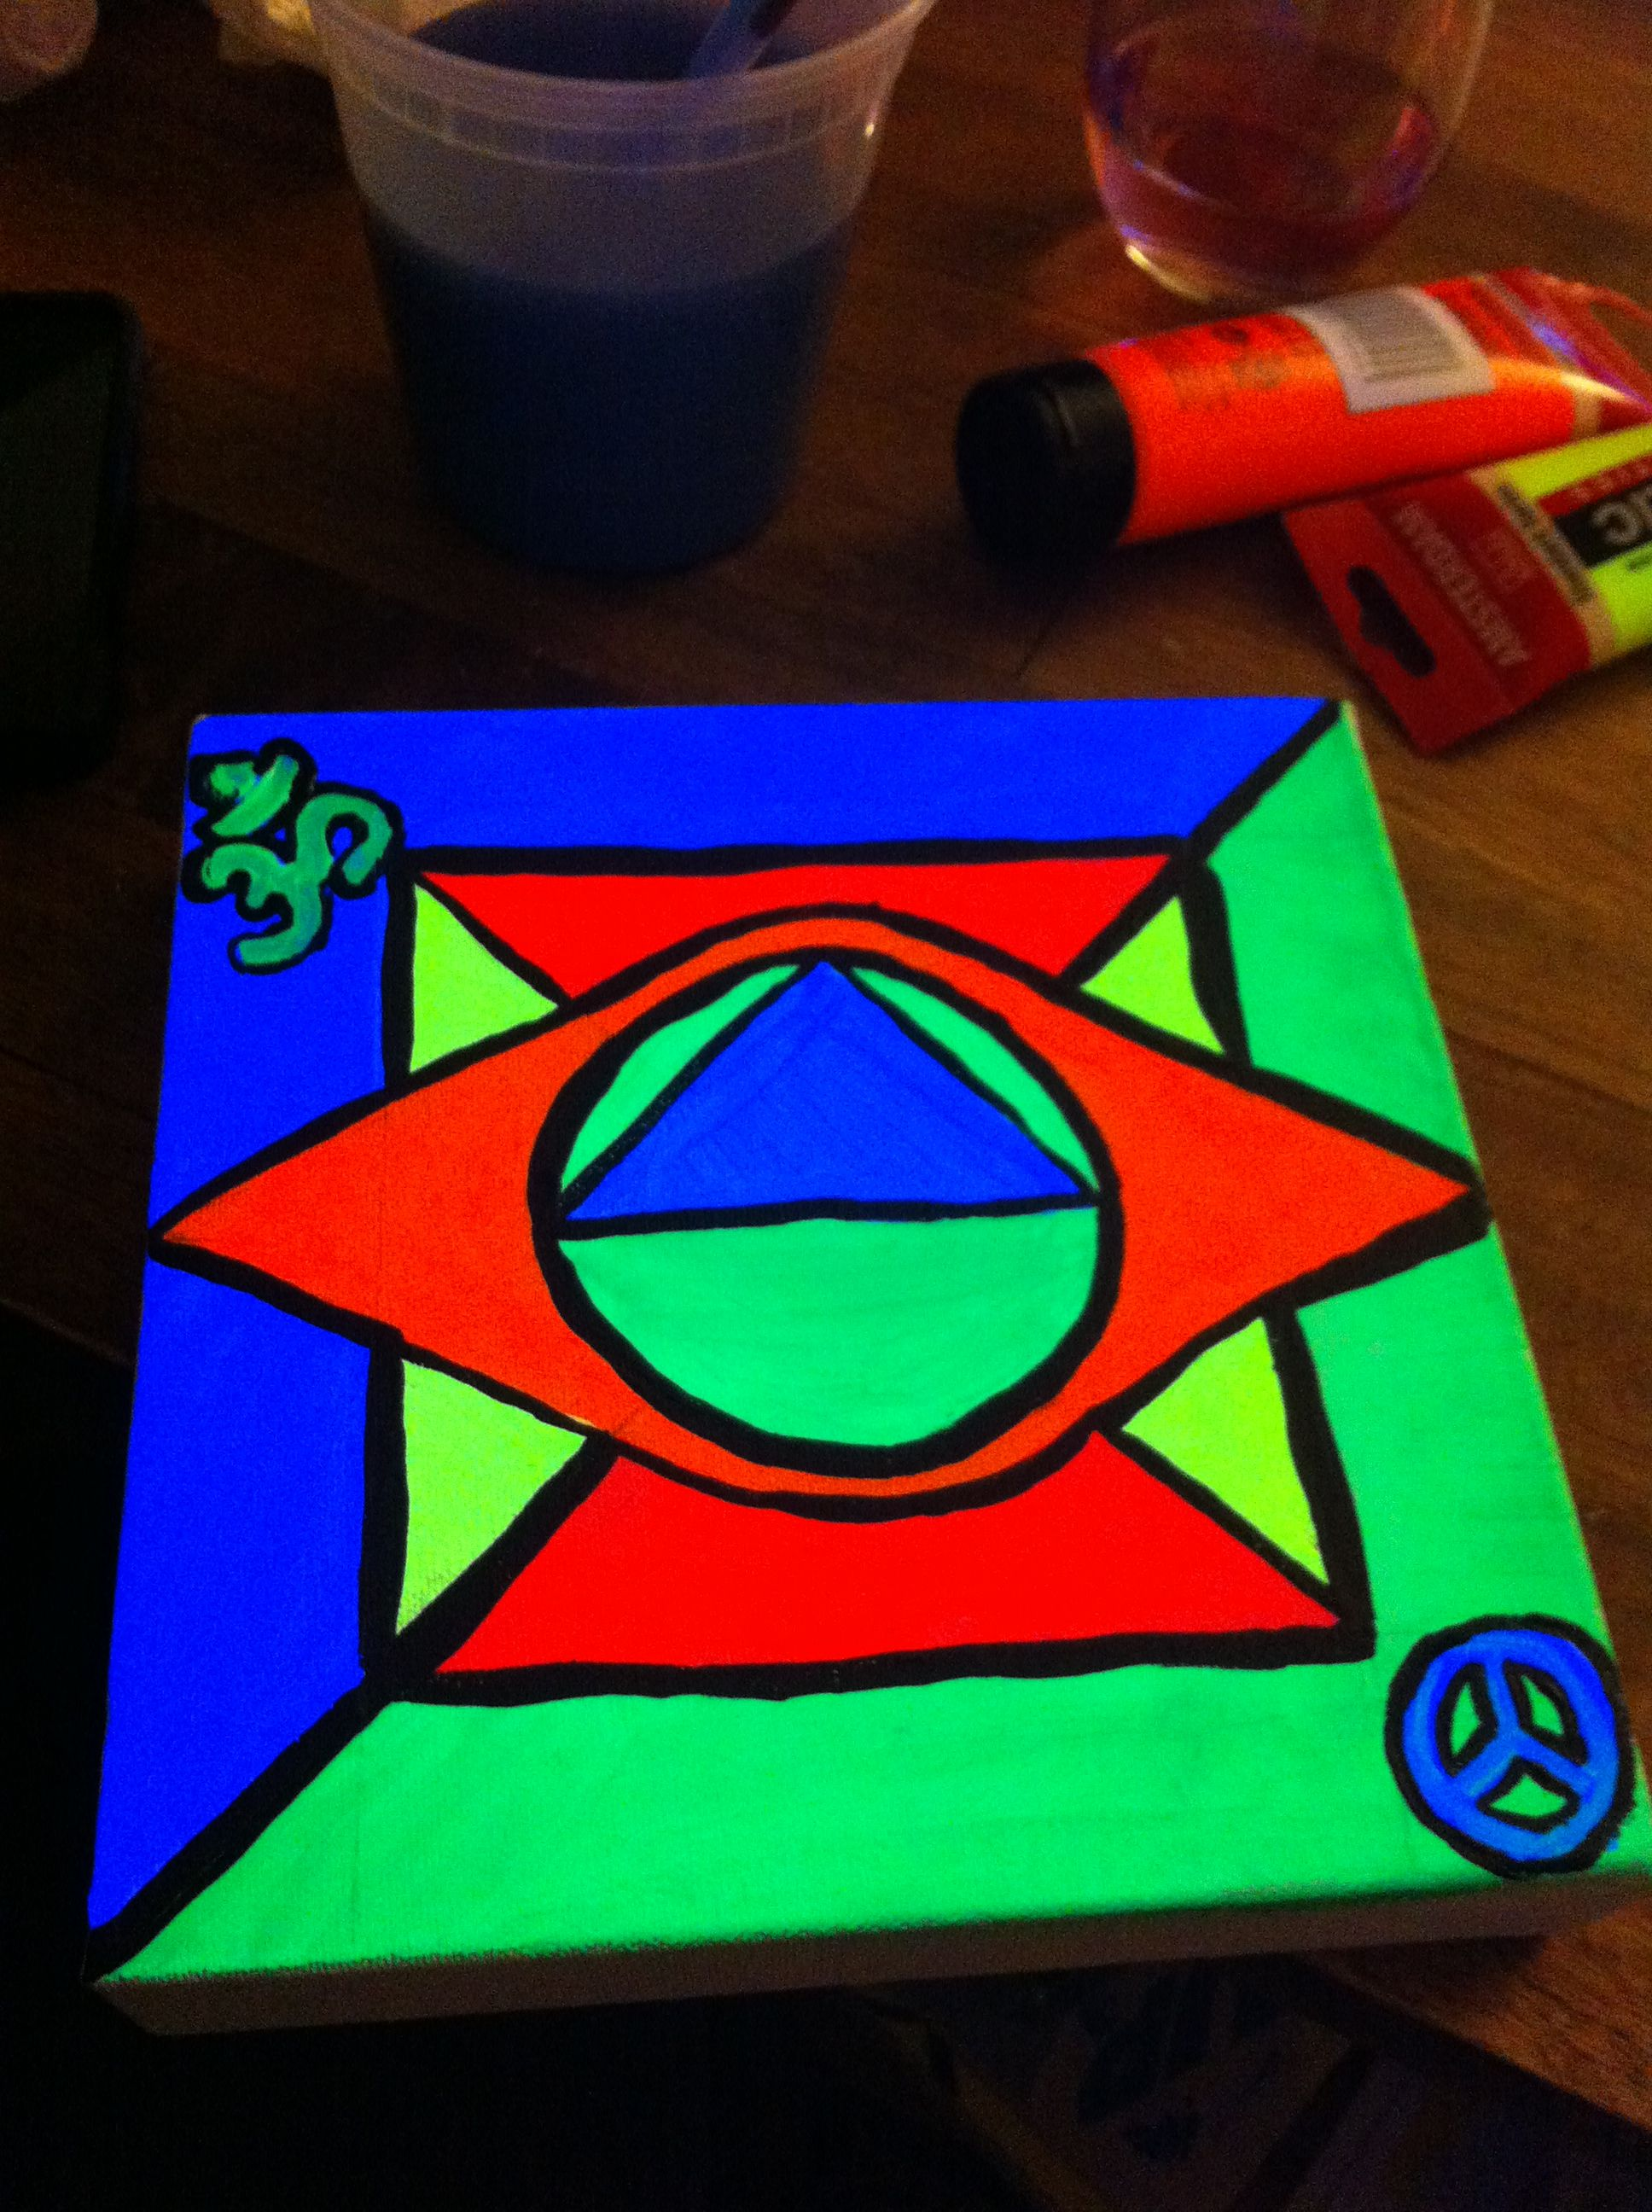 10x10 Girls Bedroom: 10x10 Canvas. Black Light Reactive. $20 Contact For More